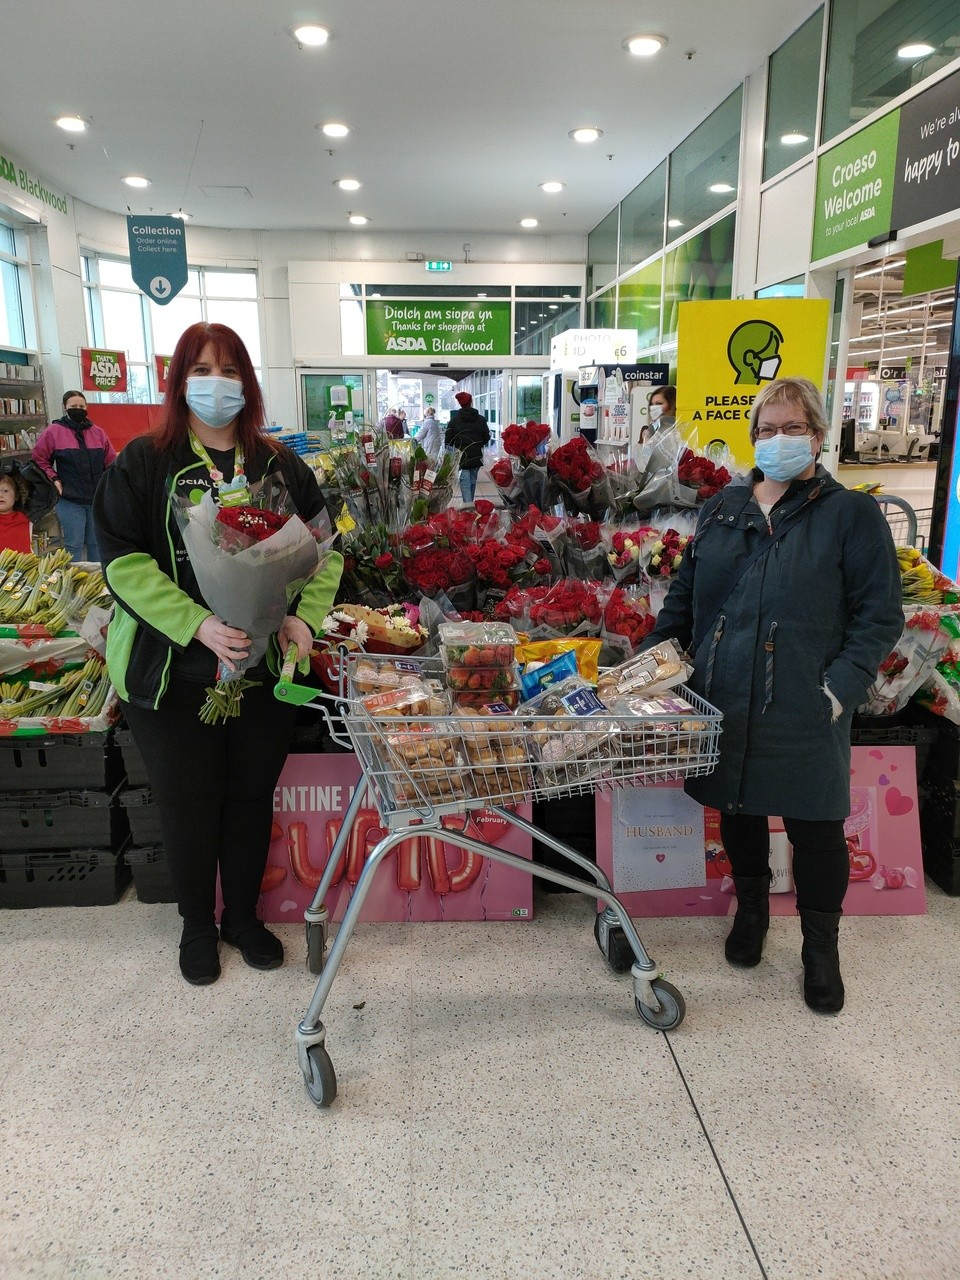 Valentine's donation to care home | Asda Blackwood